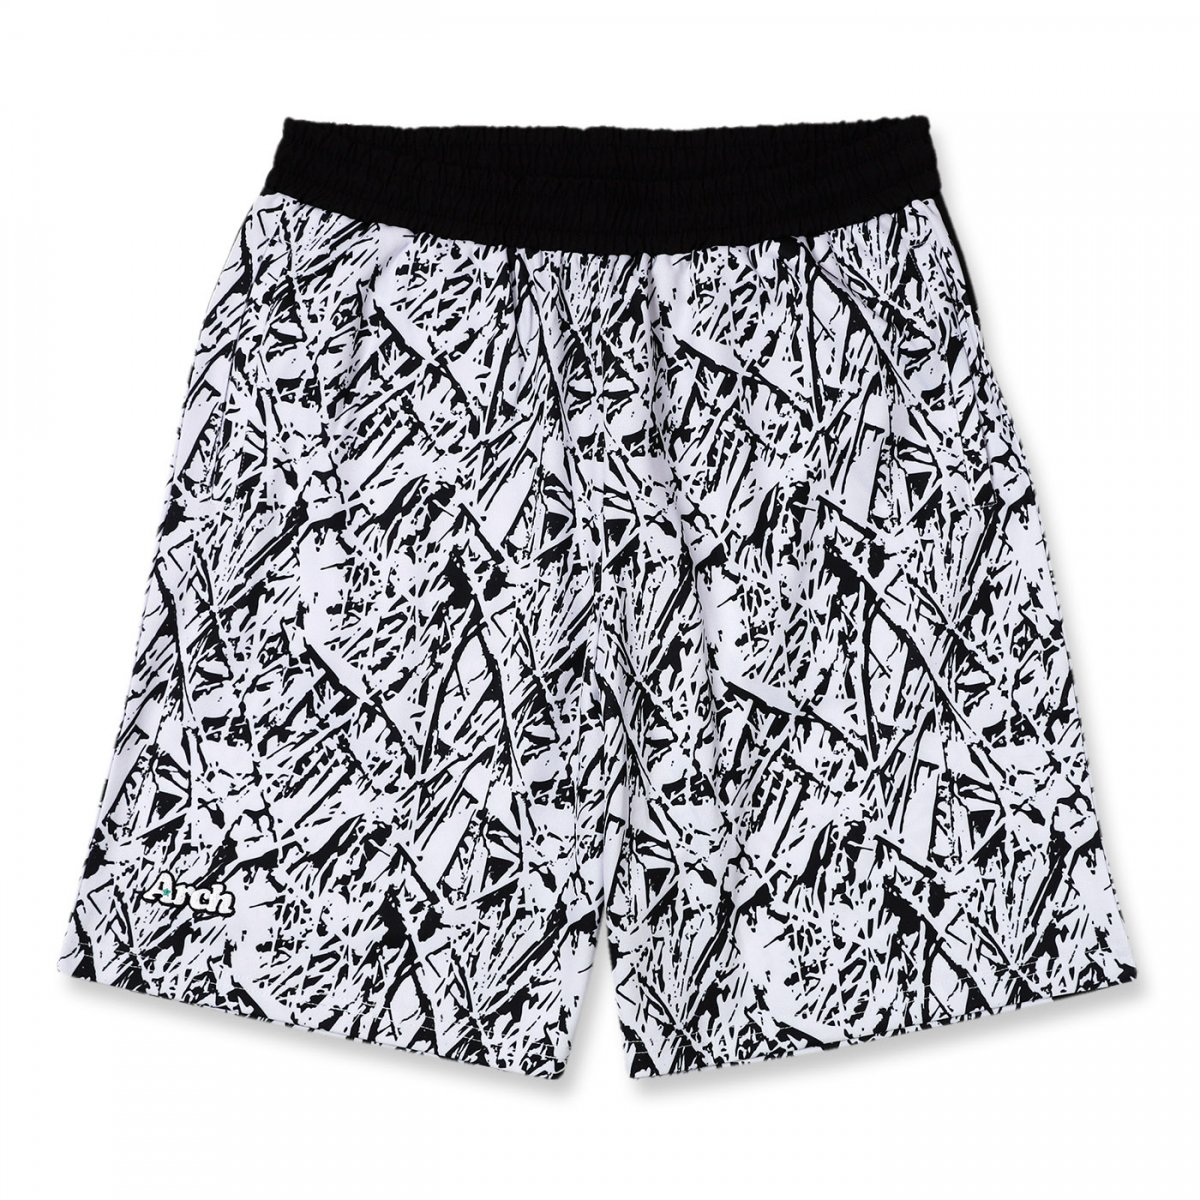 nervure shorts 【white/black】